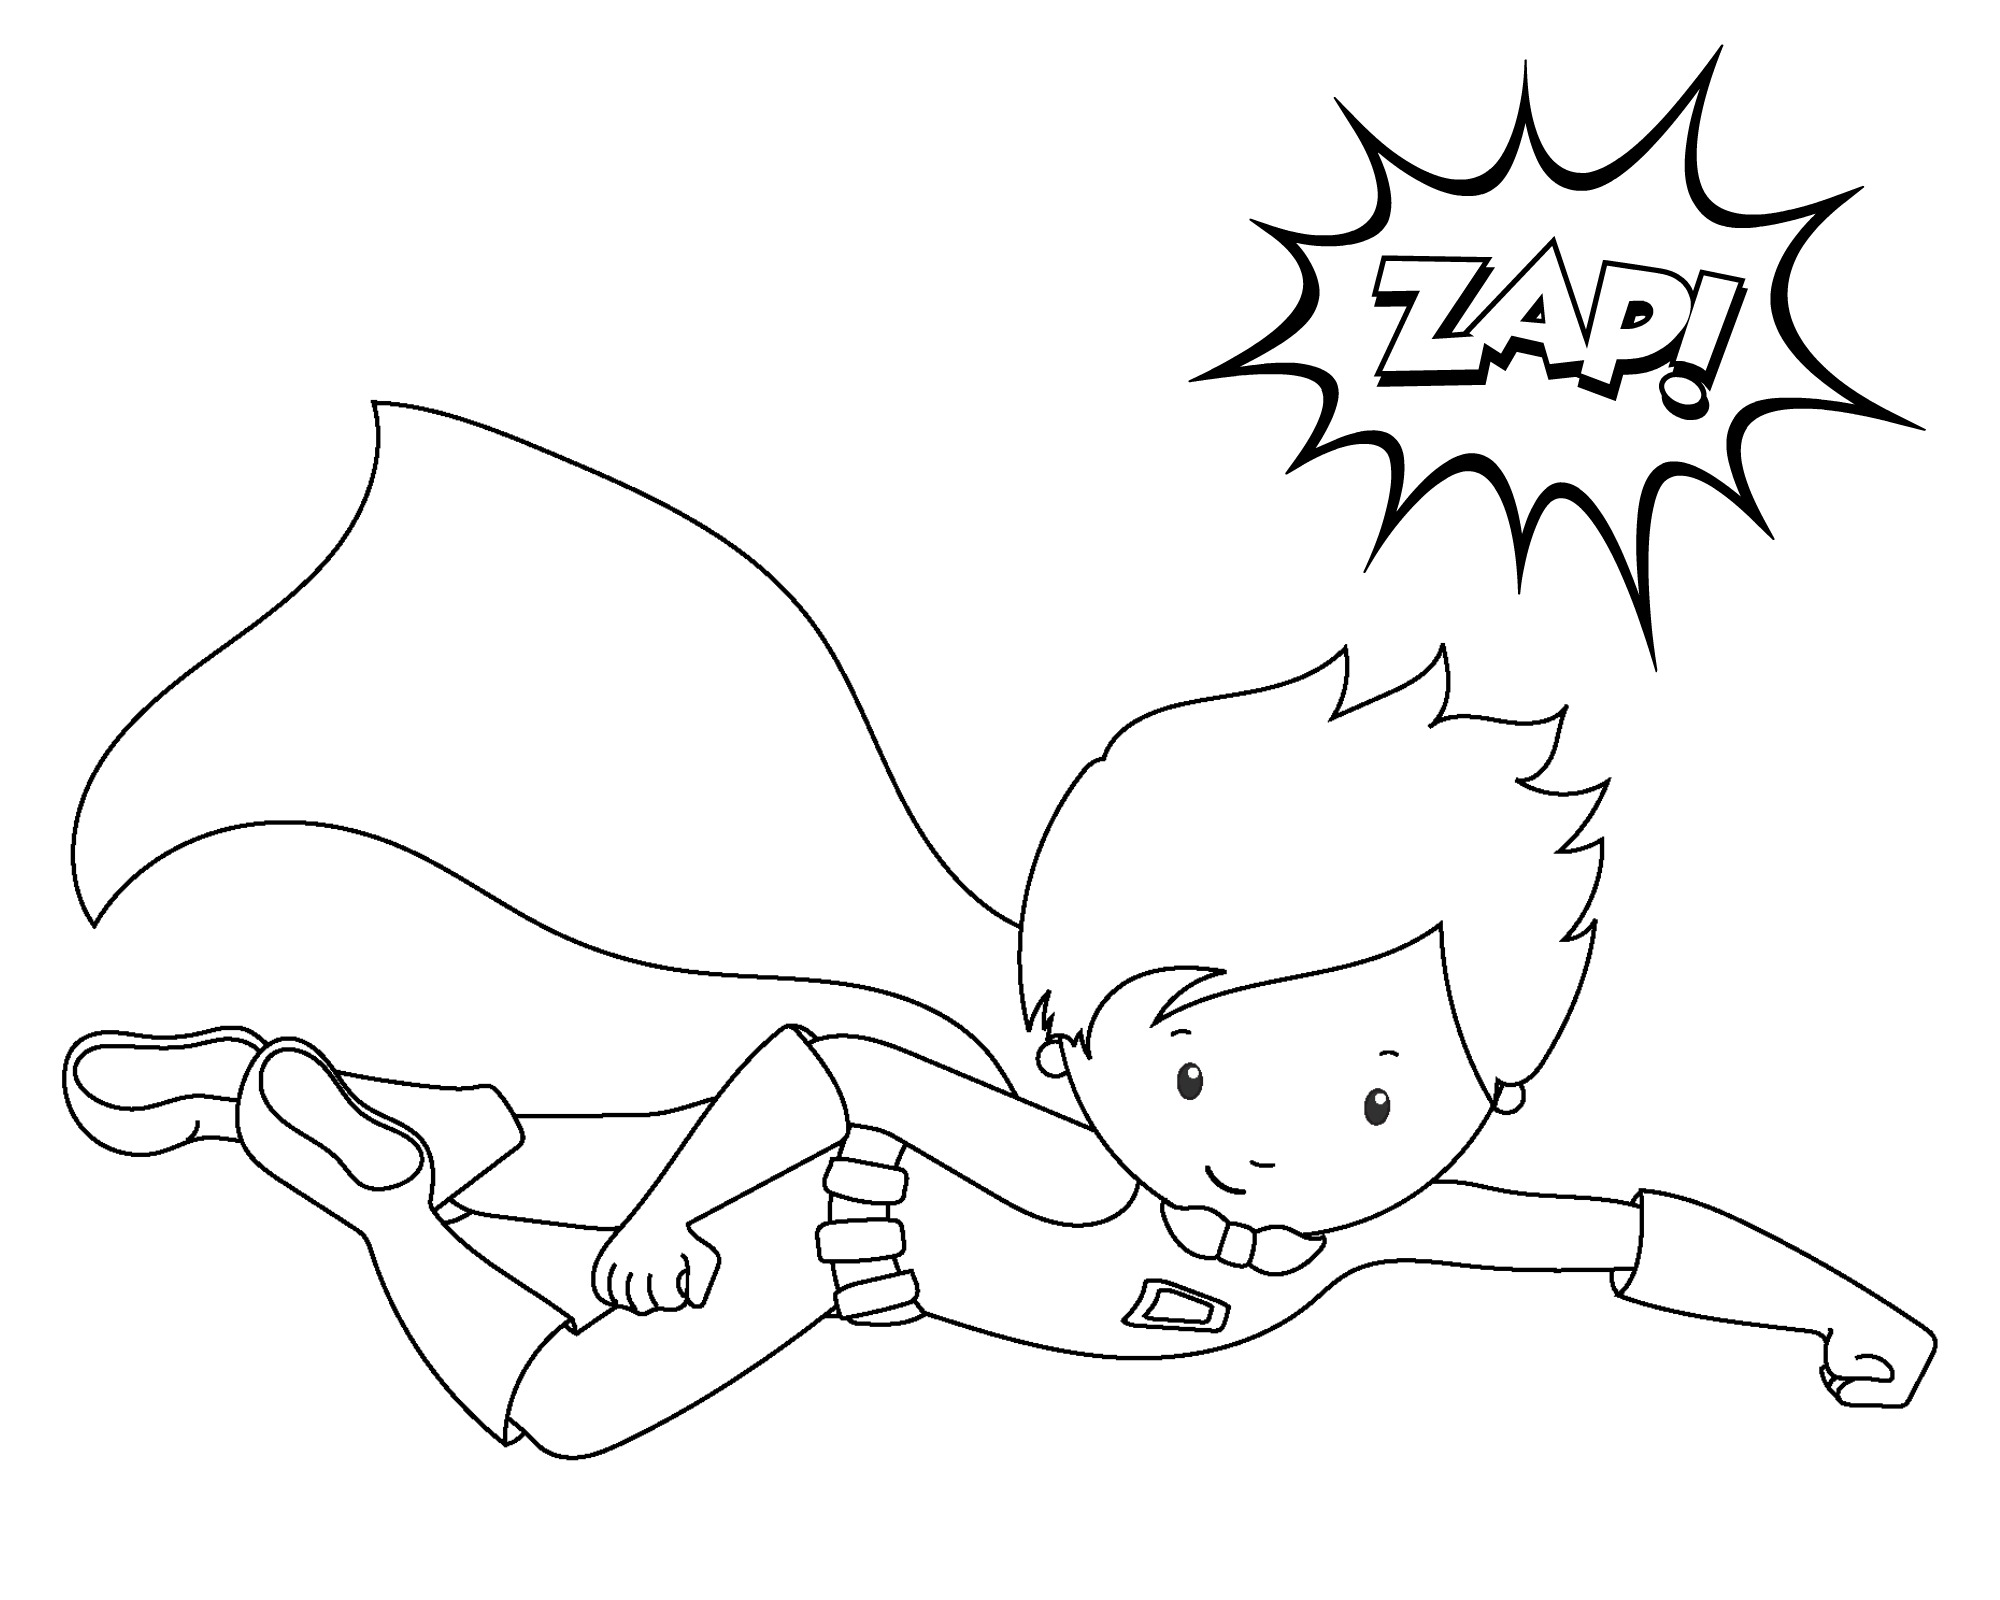 superhero coloring pages for kids Free Printable Superhero Coloring Sheets for Kids   Crazy Little  superhero coloring pages for kids